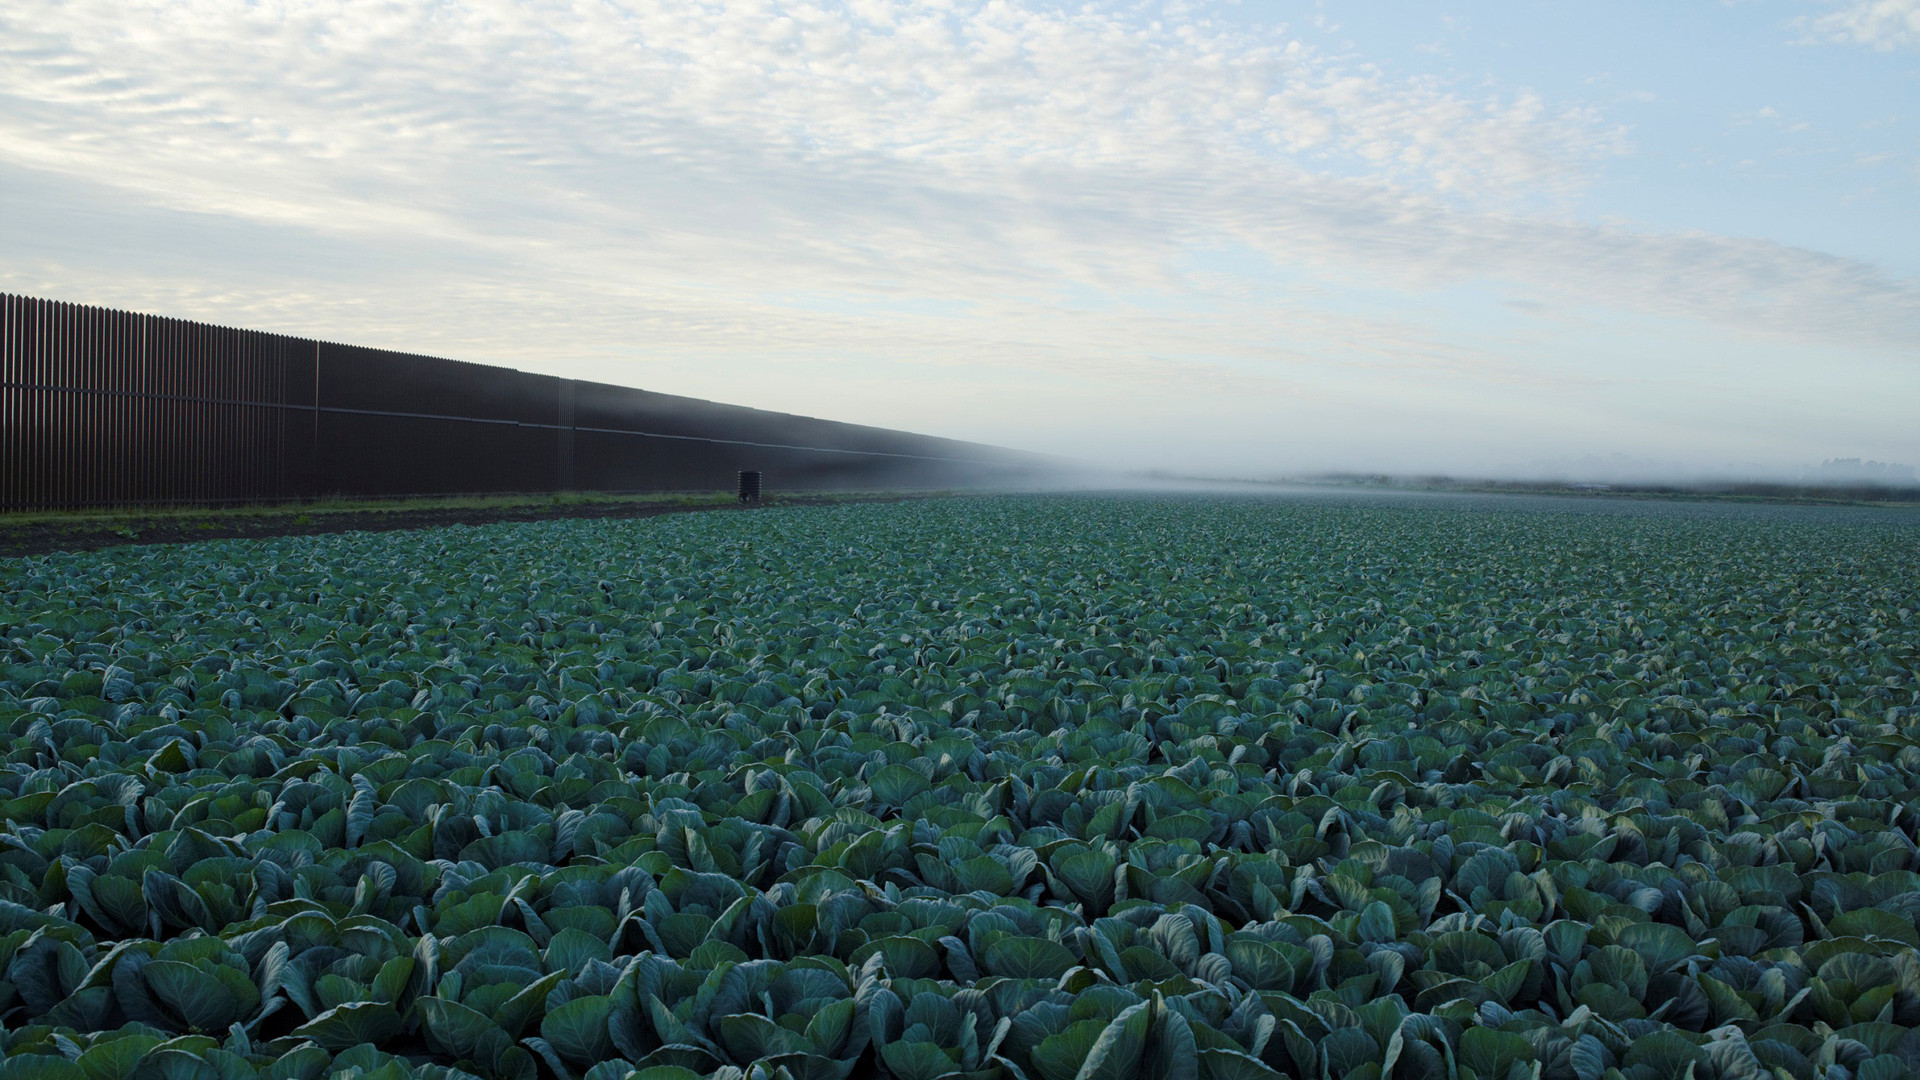 Richard Misrach, Cabbage Crop Near Brownsville, Texas, 2015